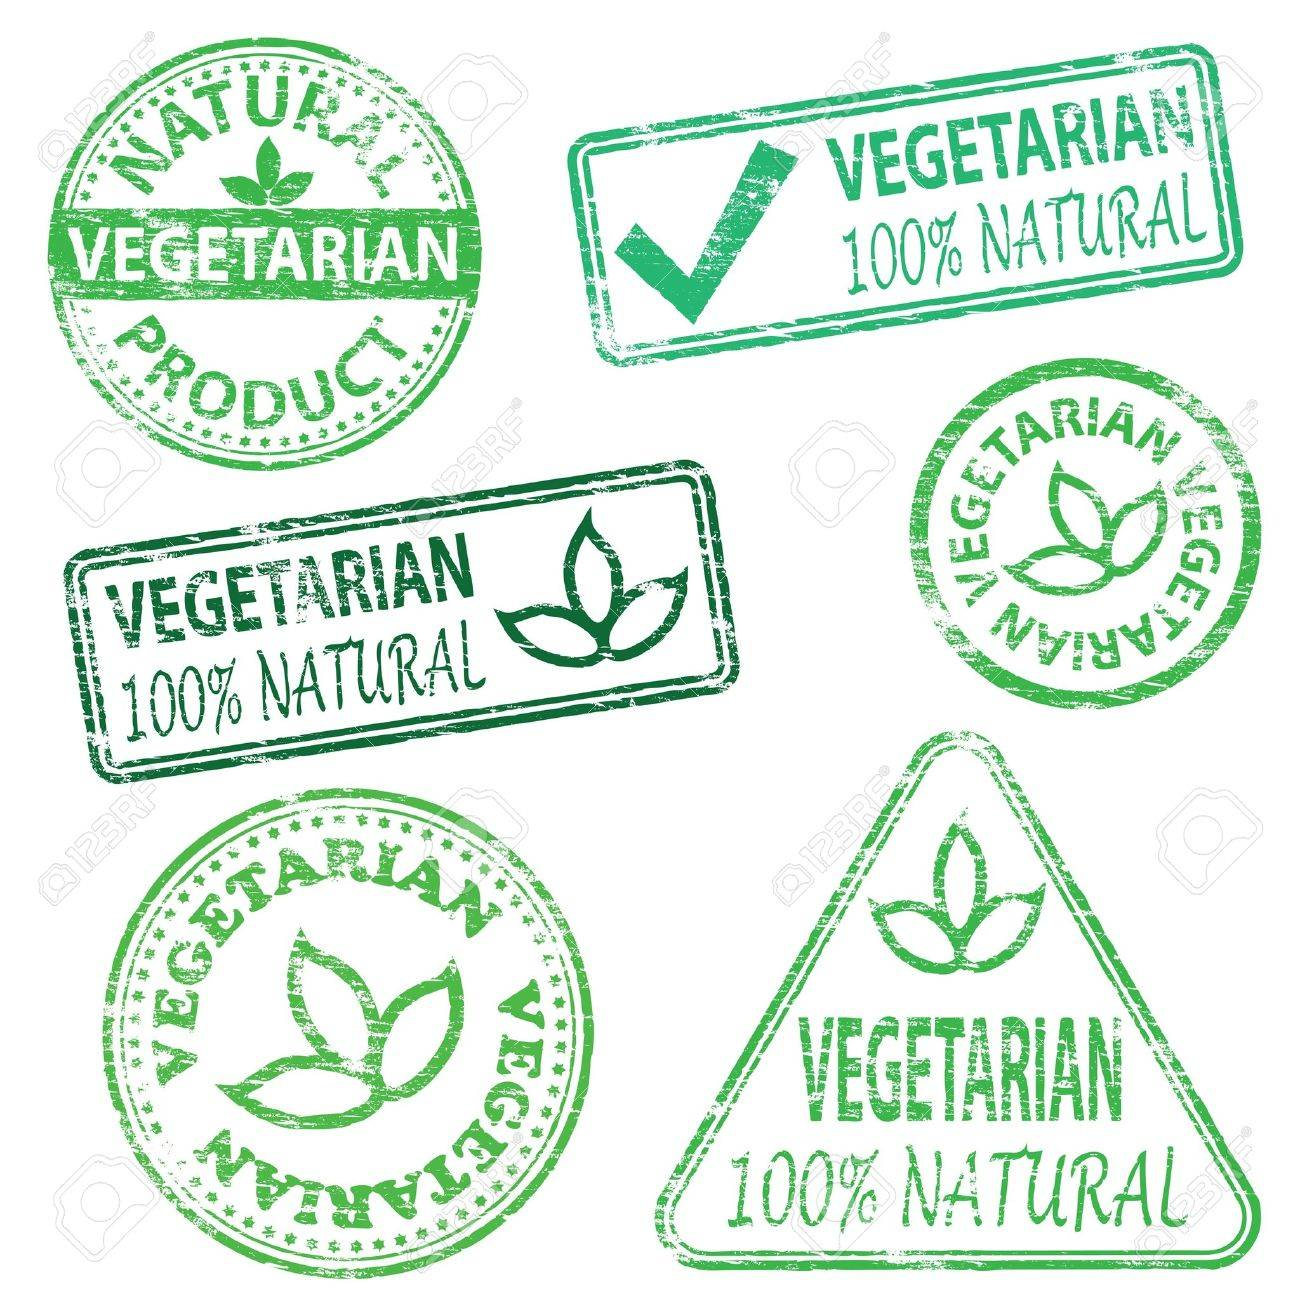 Vegetarian and natural food. Rubber stamp vector illustrations - 17243428